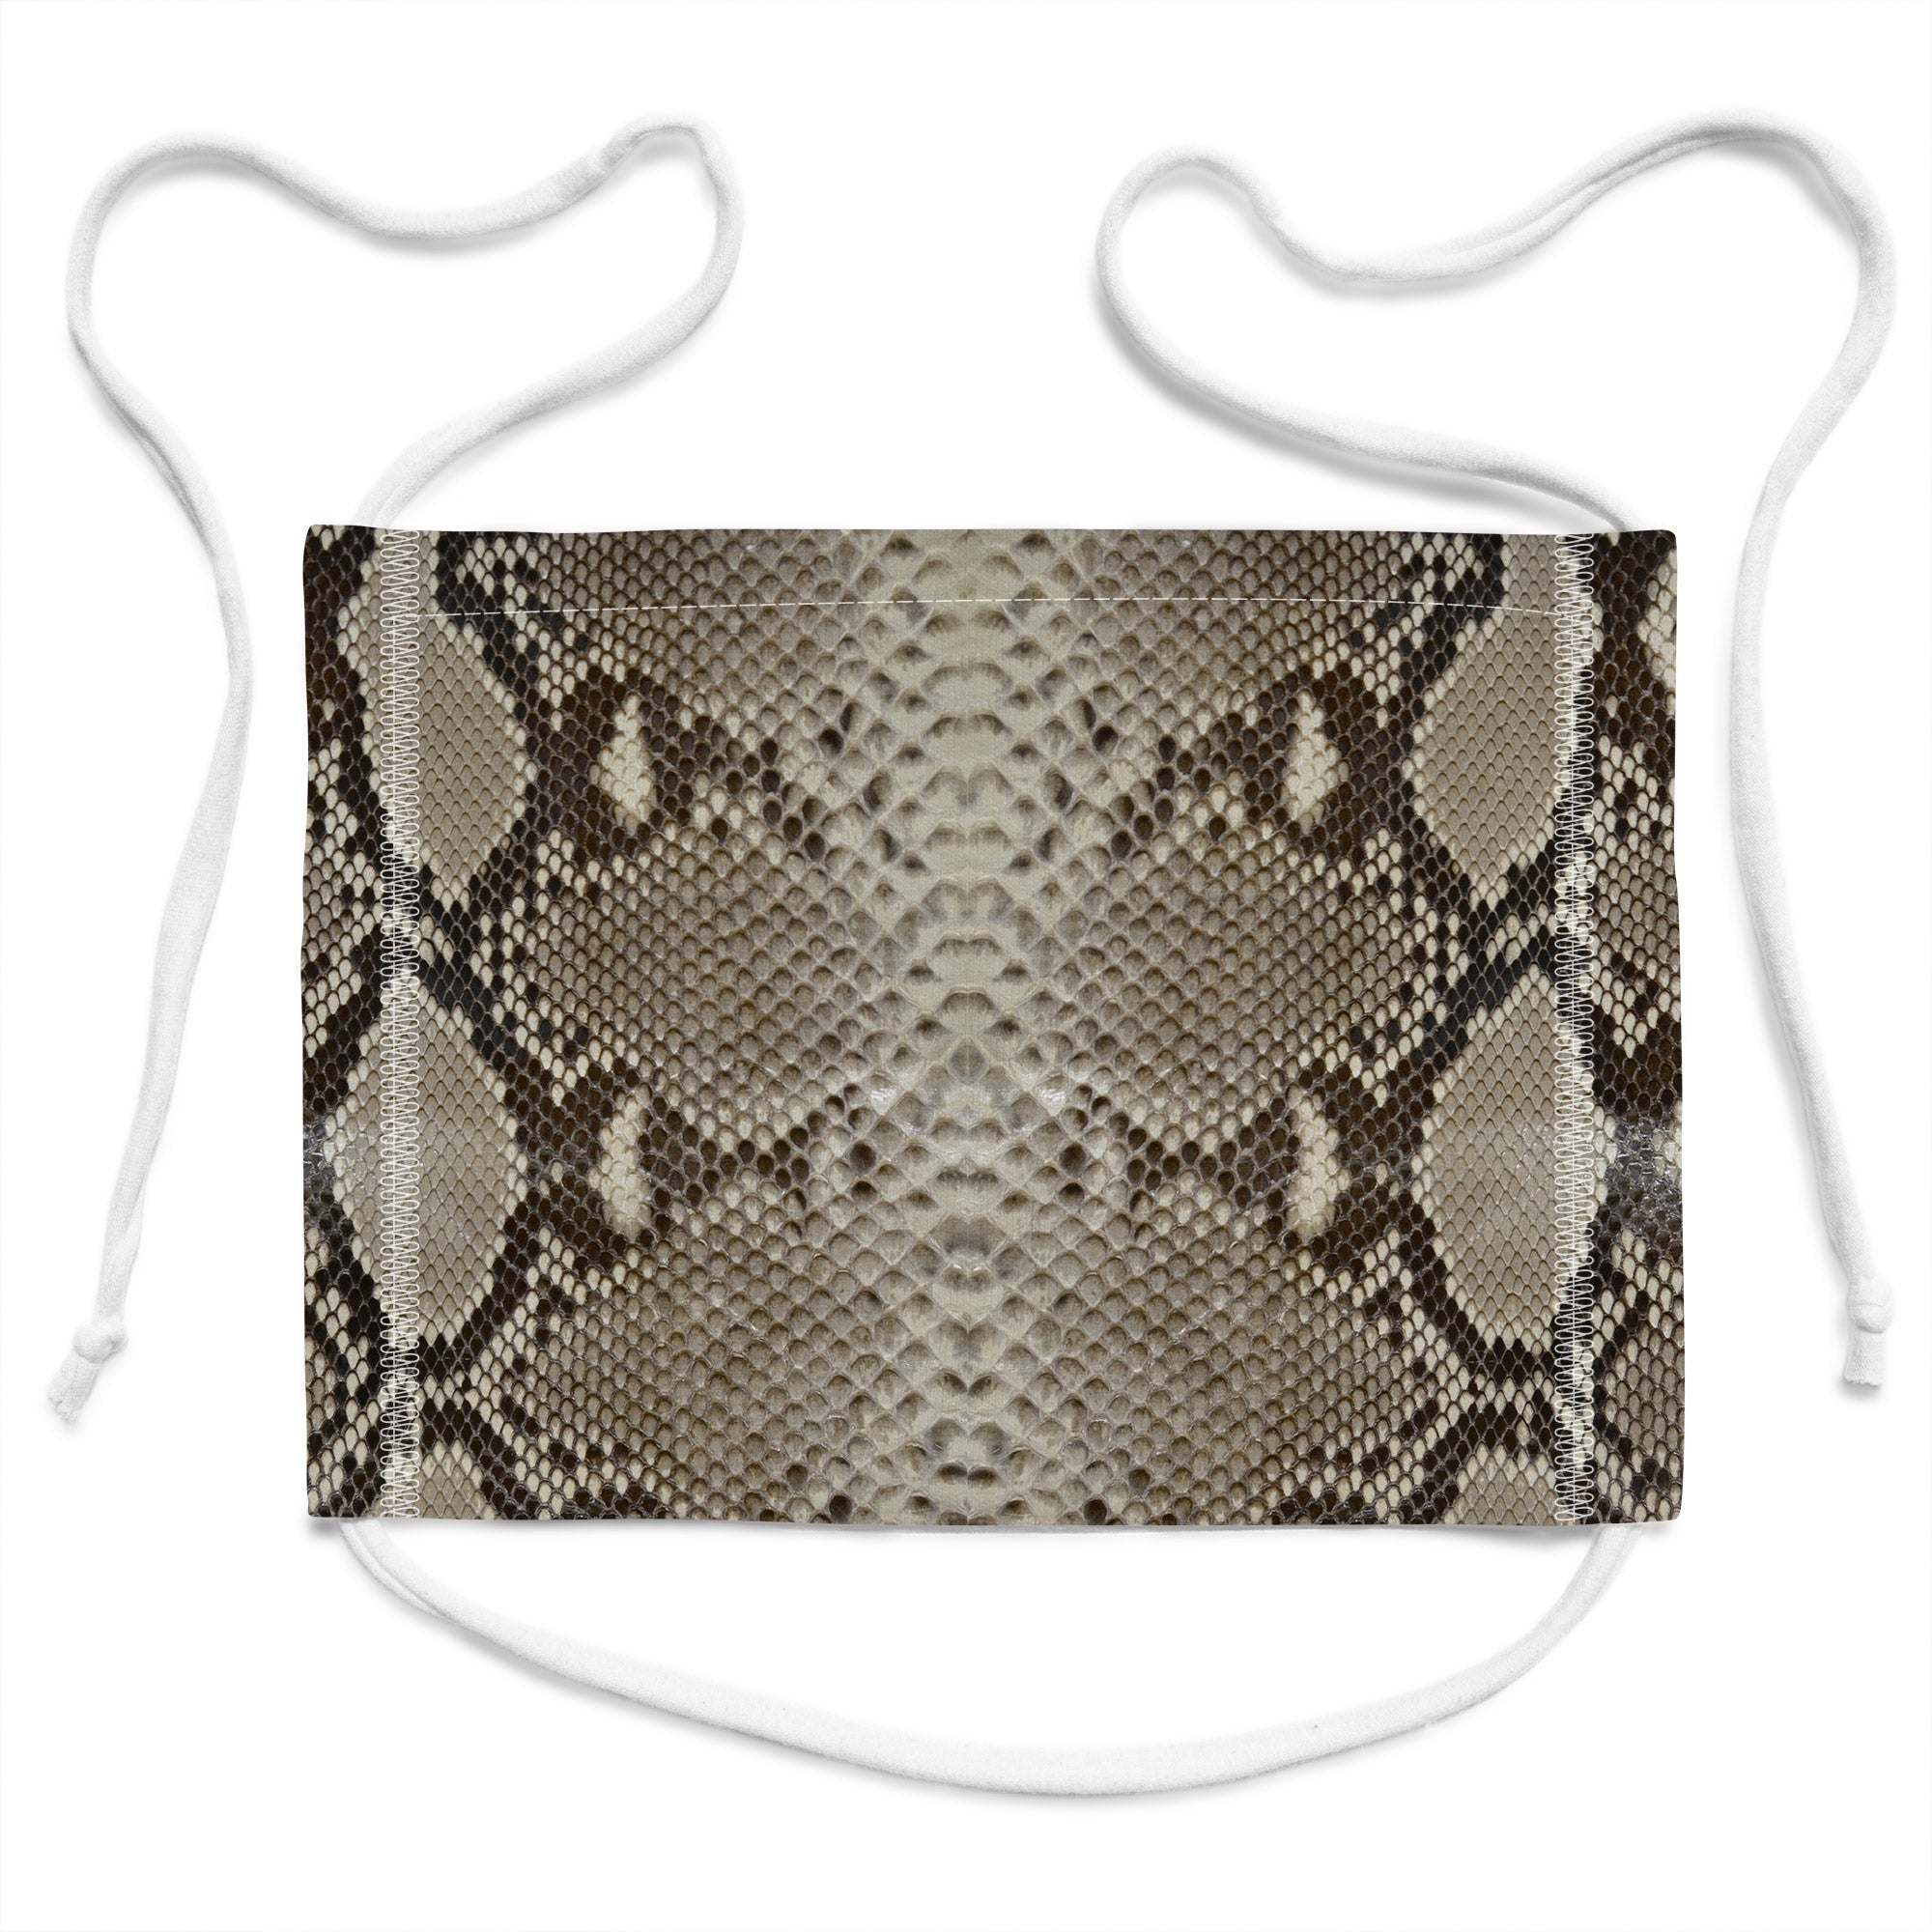 CHEAP Snakeskin Face Mask 26660545851 – Clothing Accessories